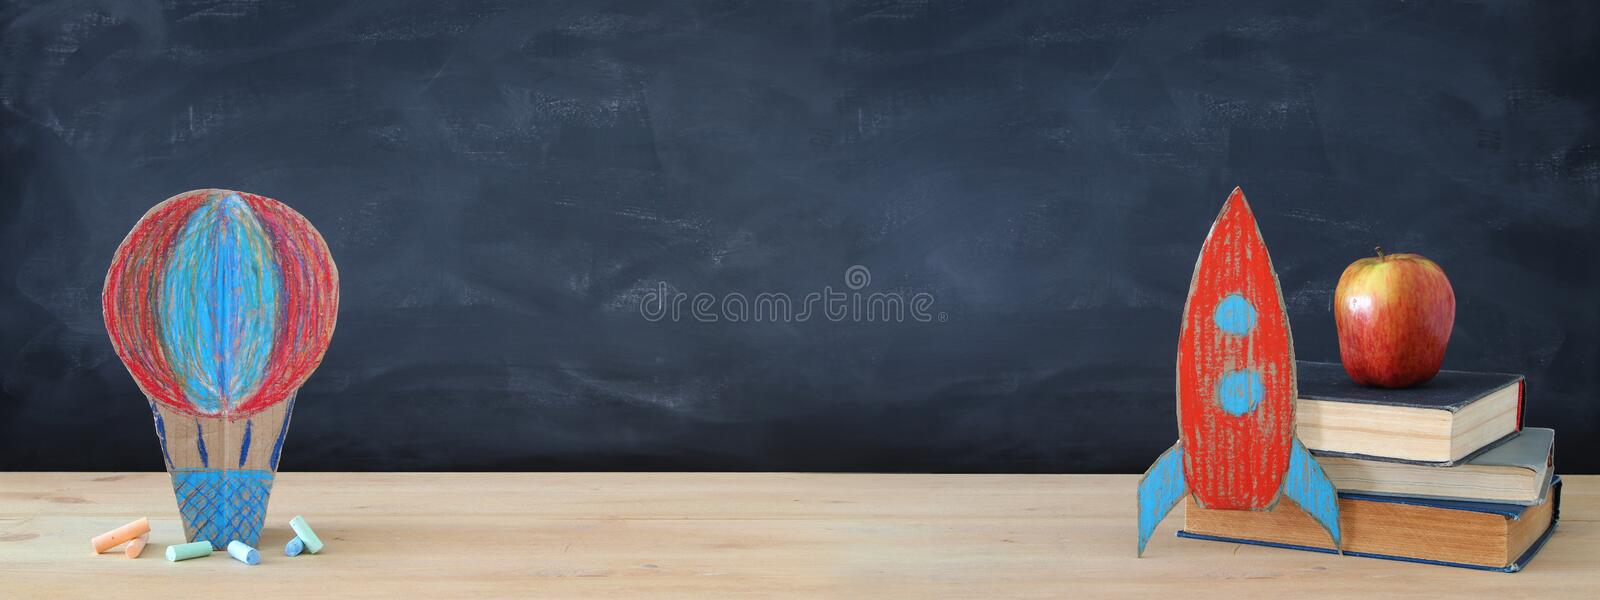 Back to school banner. Painted cardboard rocket and Hot air balloon next to books in front of classroom blackboard. stock images